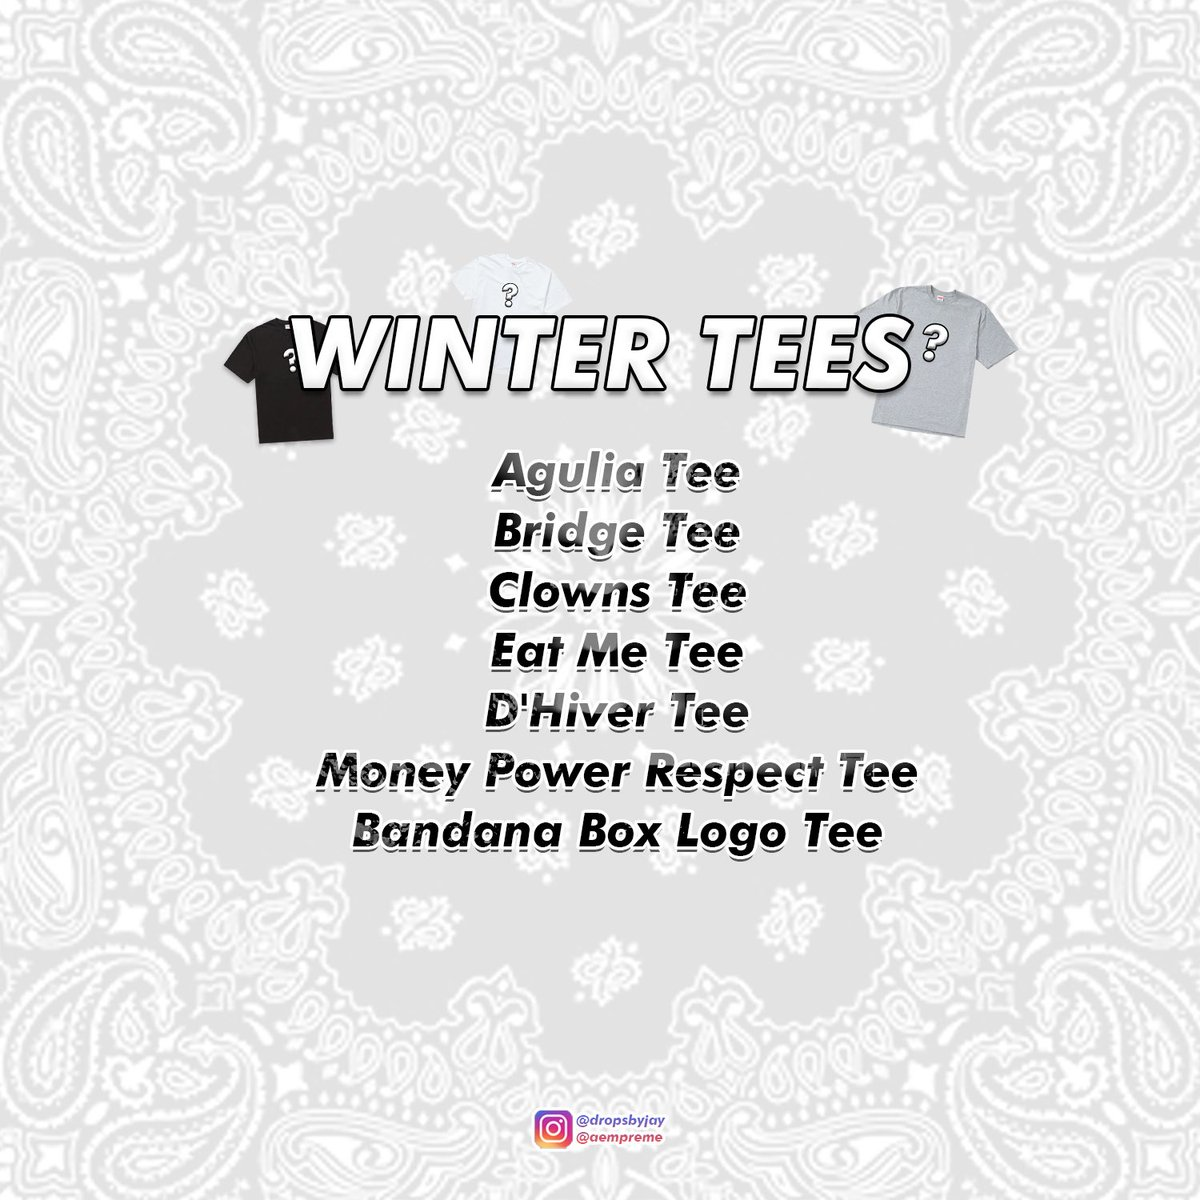 Supreme Winter Tees Are Set To Drop